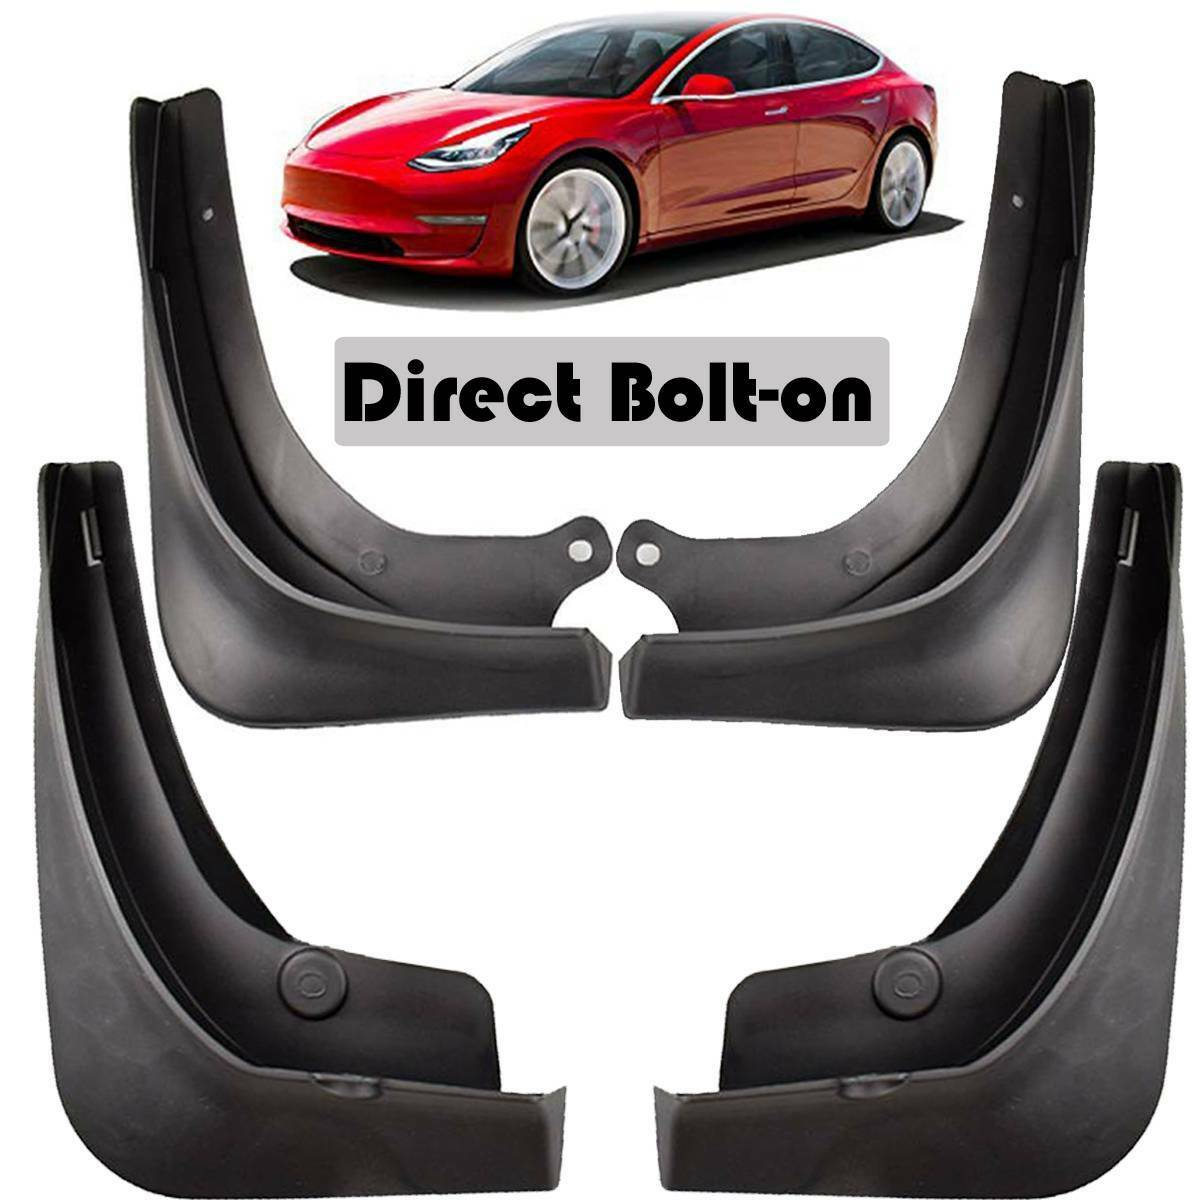 2018 Premium Heavy Duty Mud Flaps Set of 4 with Mounting Hardware-Fits Tesla Model 3 2017 2020-Splash Guard Flaps-Front,Rear,Left and Right-Black Mud Guard-Durable ABS Plastic Renewed 2019